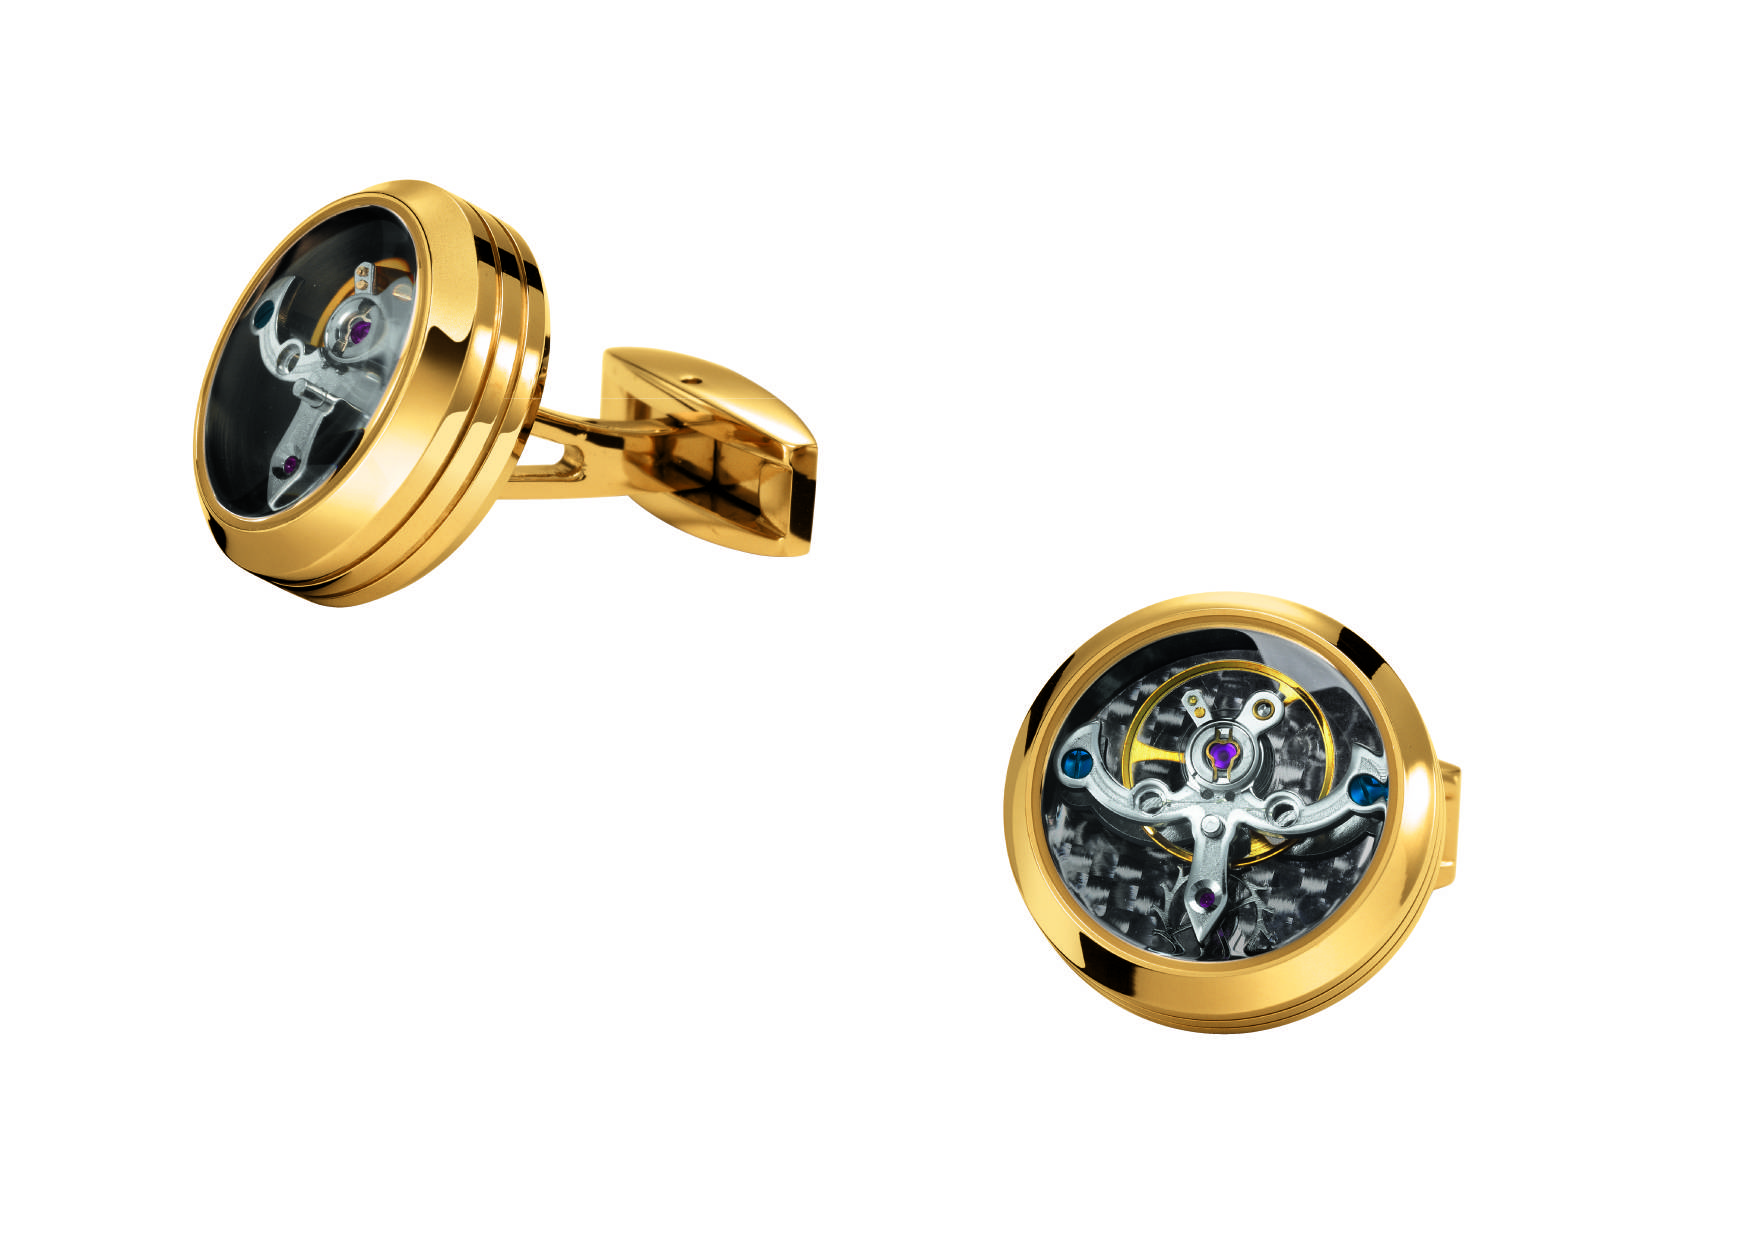 Tourbillon Cuff Links Arrive at Lustre Precious Gems